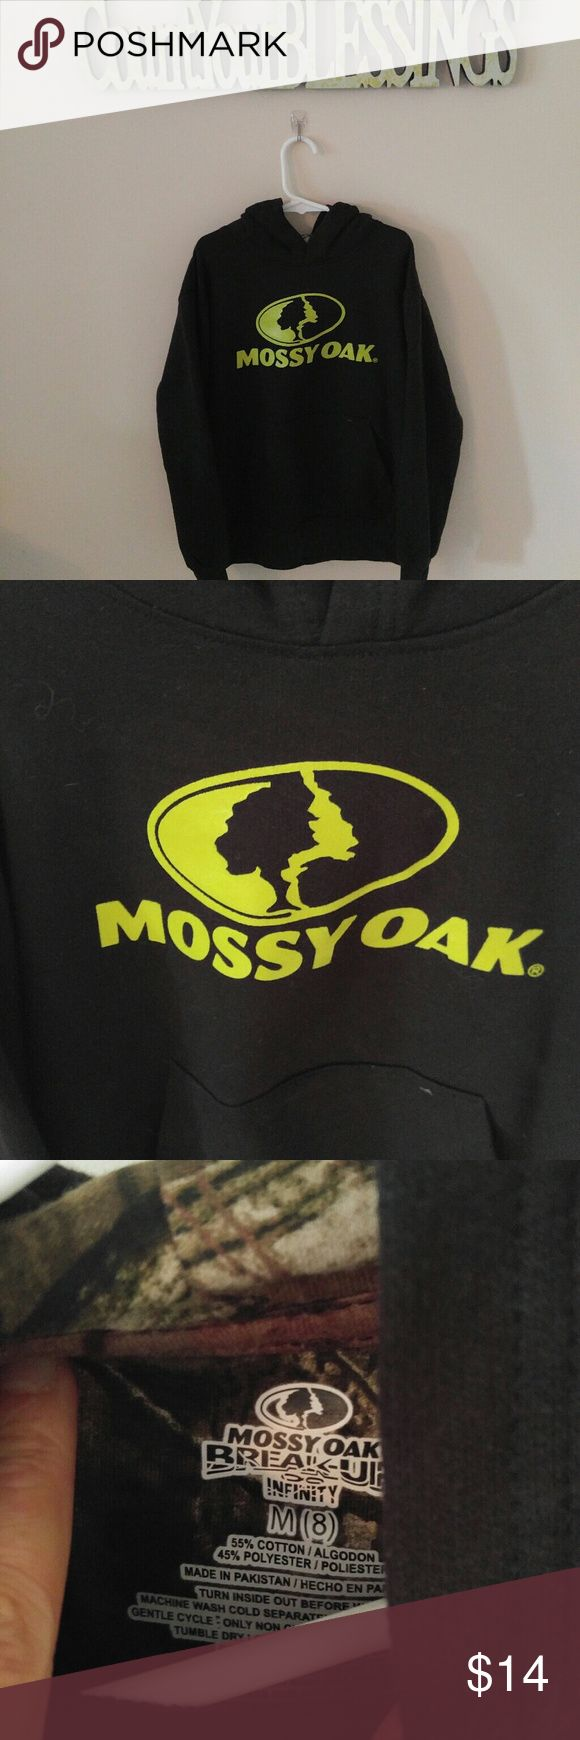 3 for $25 MOSSY OAK HOODIE 3 for $25- Purchase for list price, make offer OR BUNDLE & SAVE BIG!! Bundle 3 items (marked 3 for $25) and offer $25! MIX & MATCH- Womens, Juniors, Kids & Men MOSSY oak Shirts & Tops Sweatshirts & Hoodies